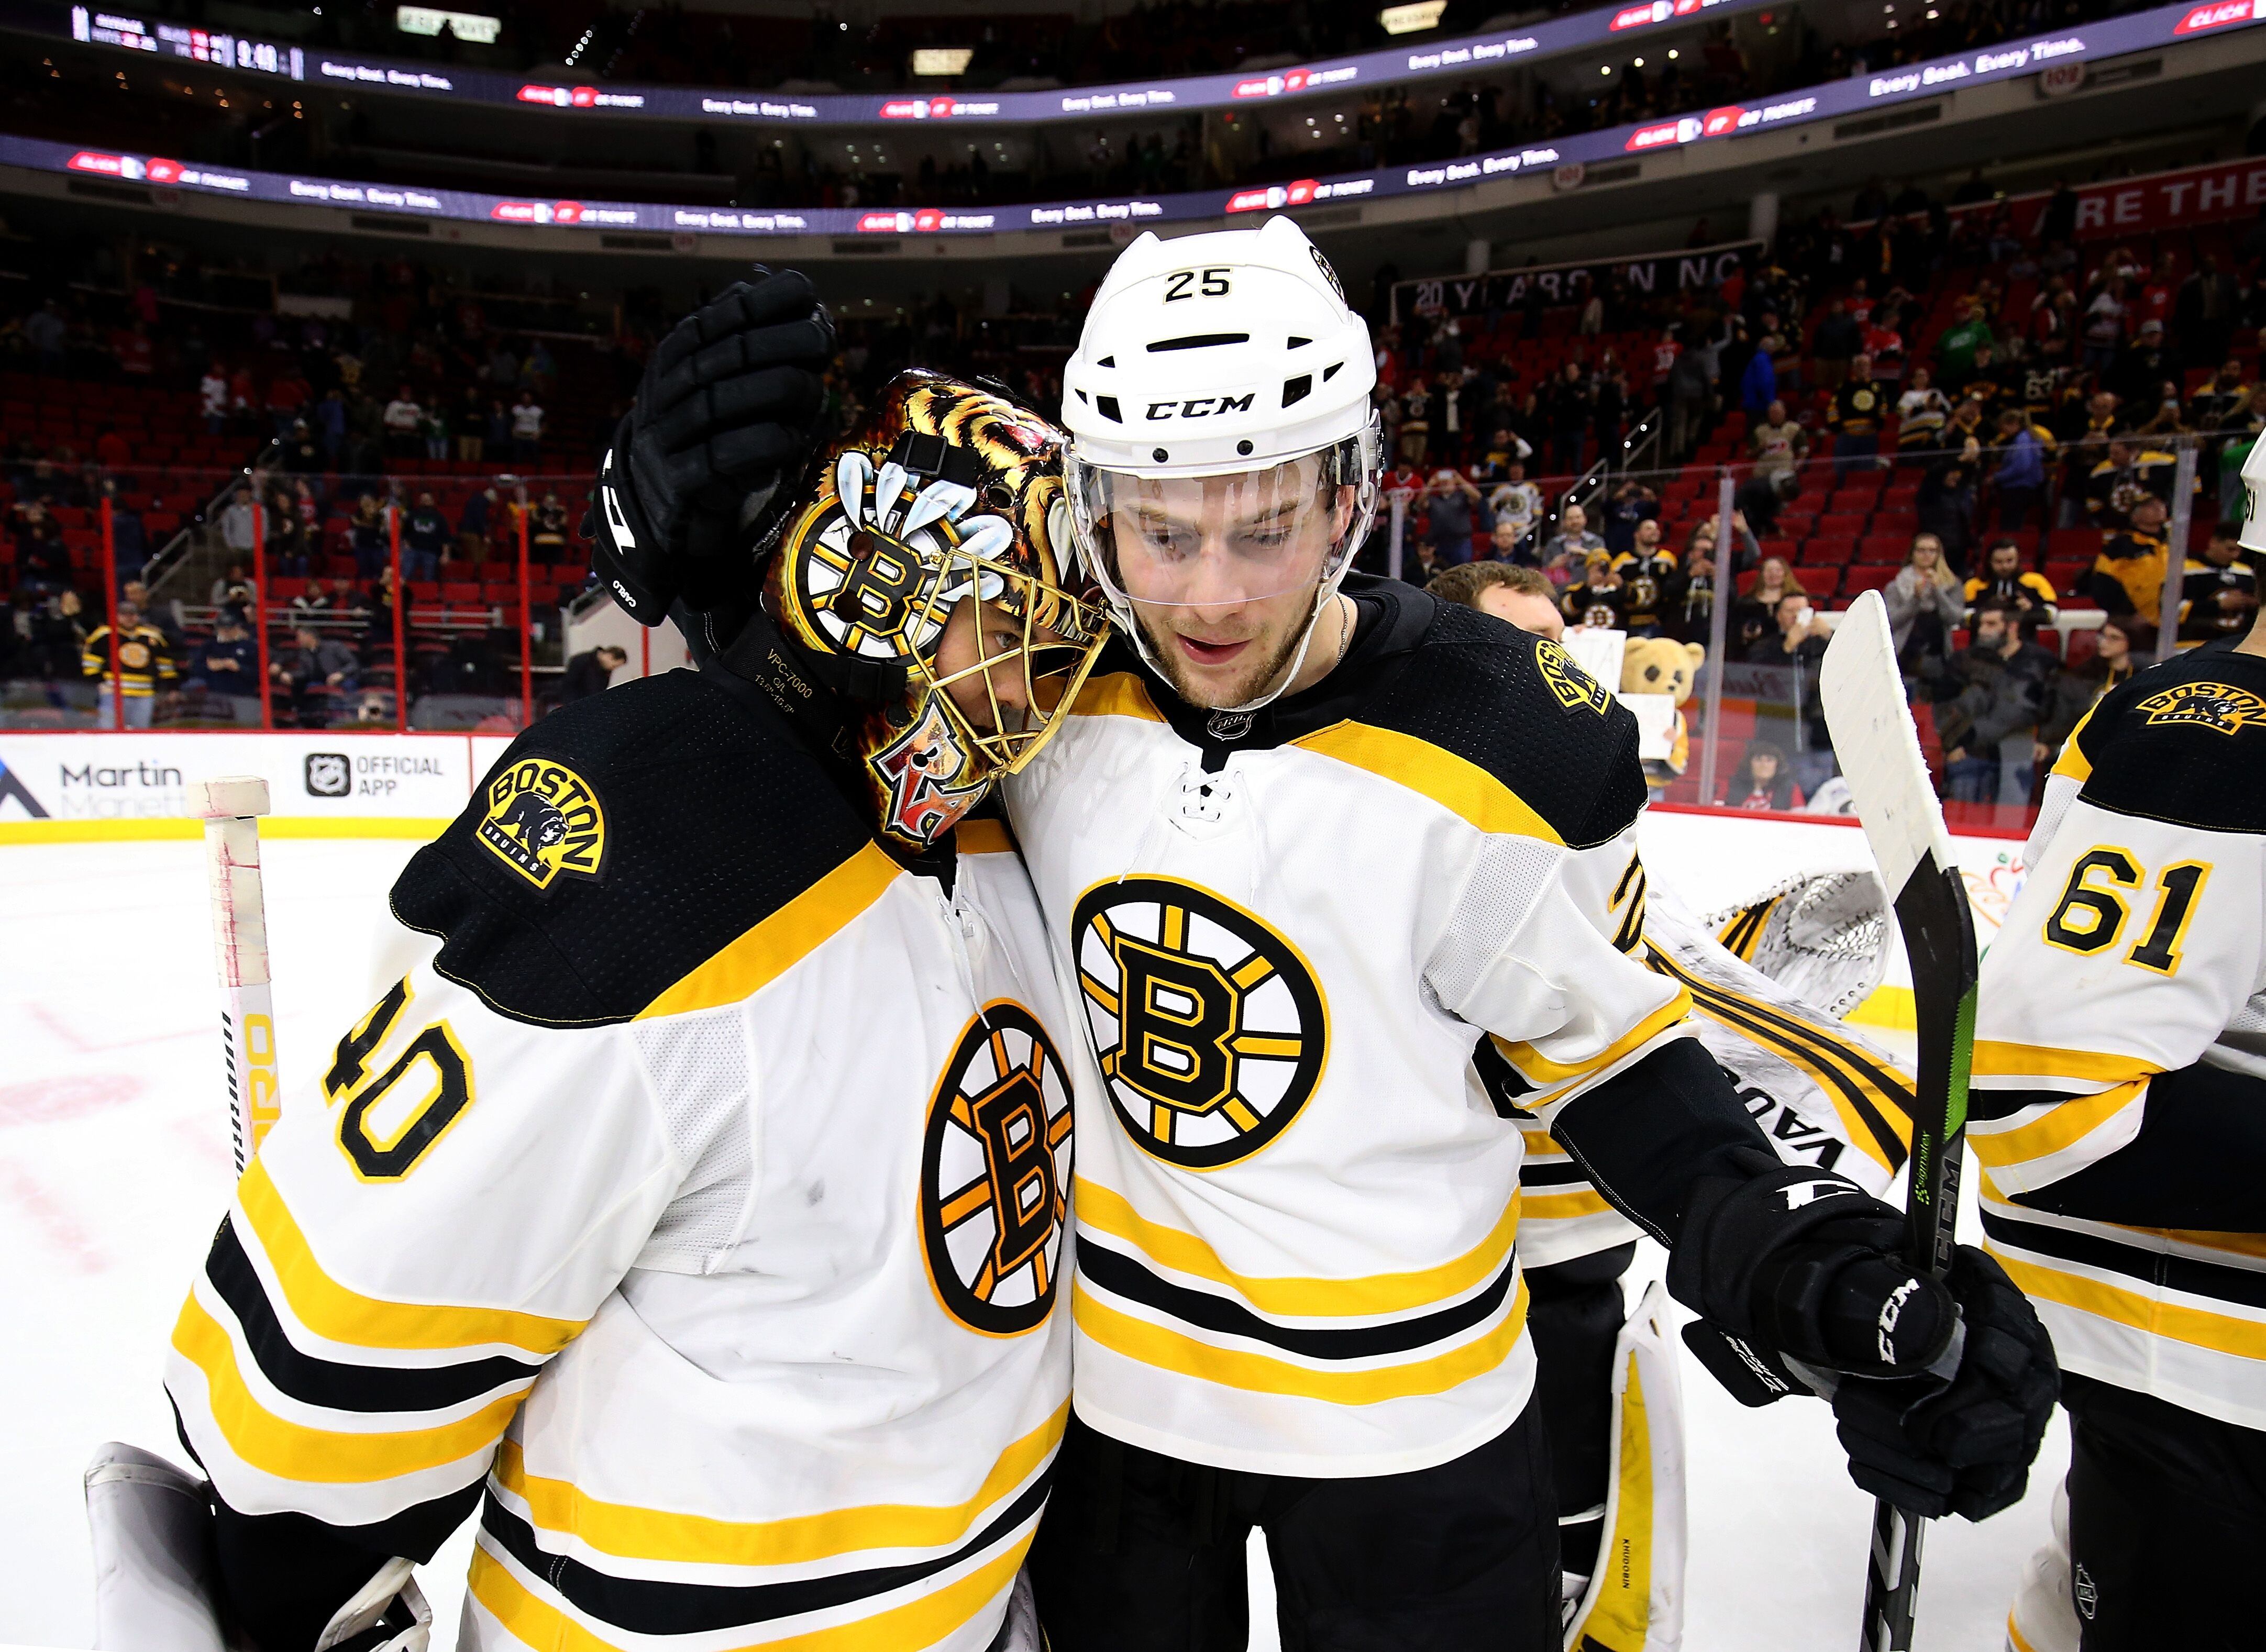 933093390-boston-bruins-v-carolina-hurricanes.jpg